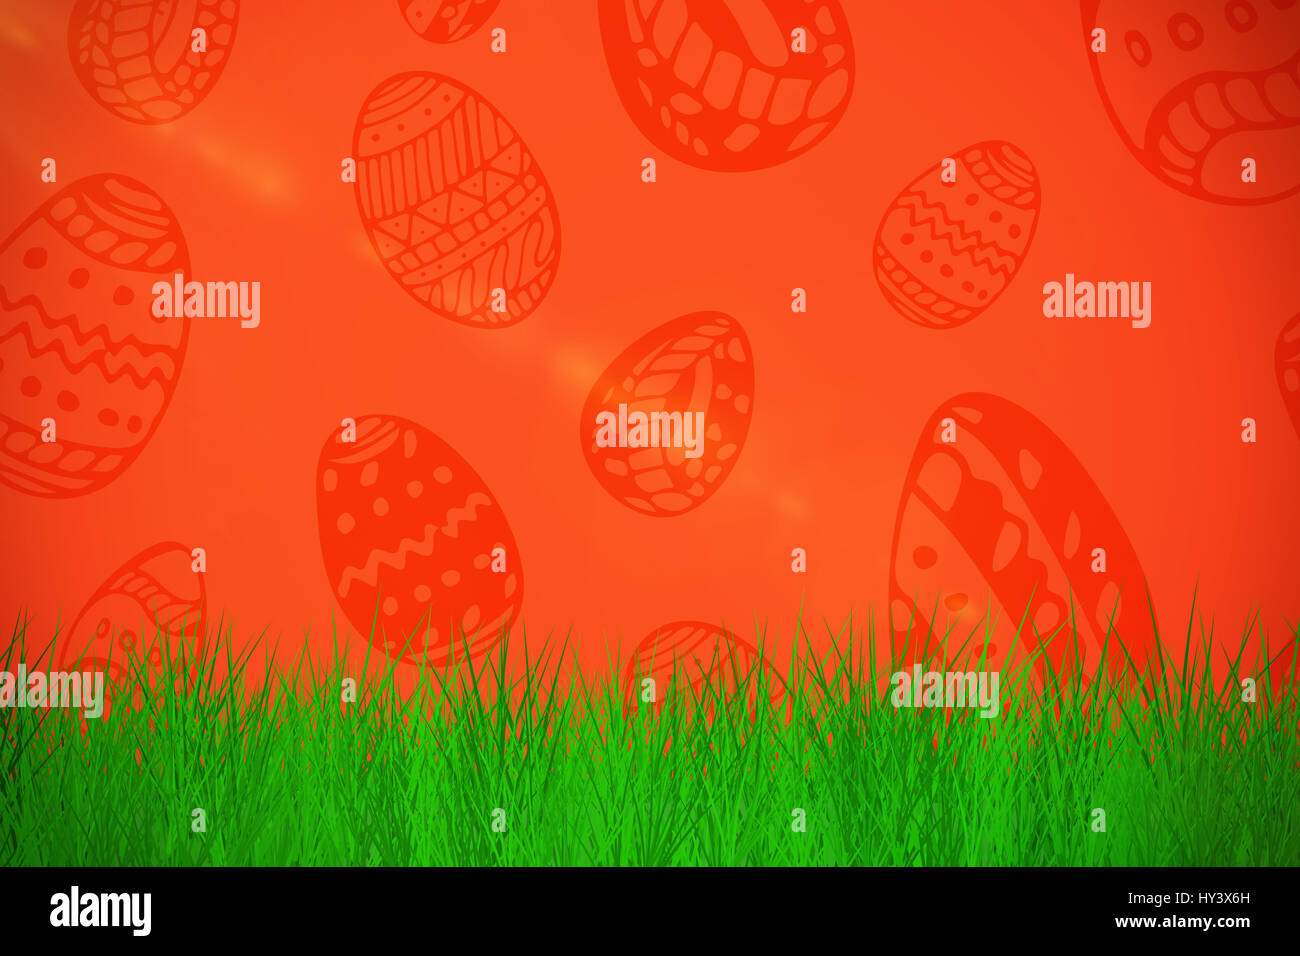 grass against white background  against red background - Stock Image